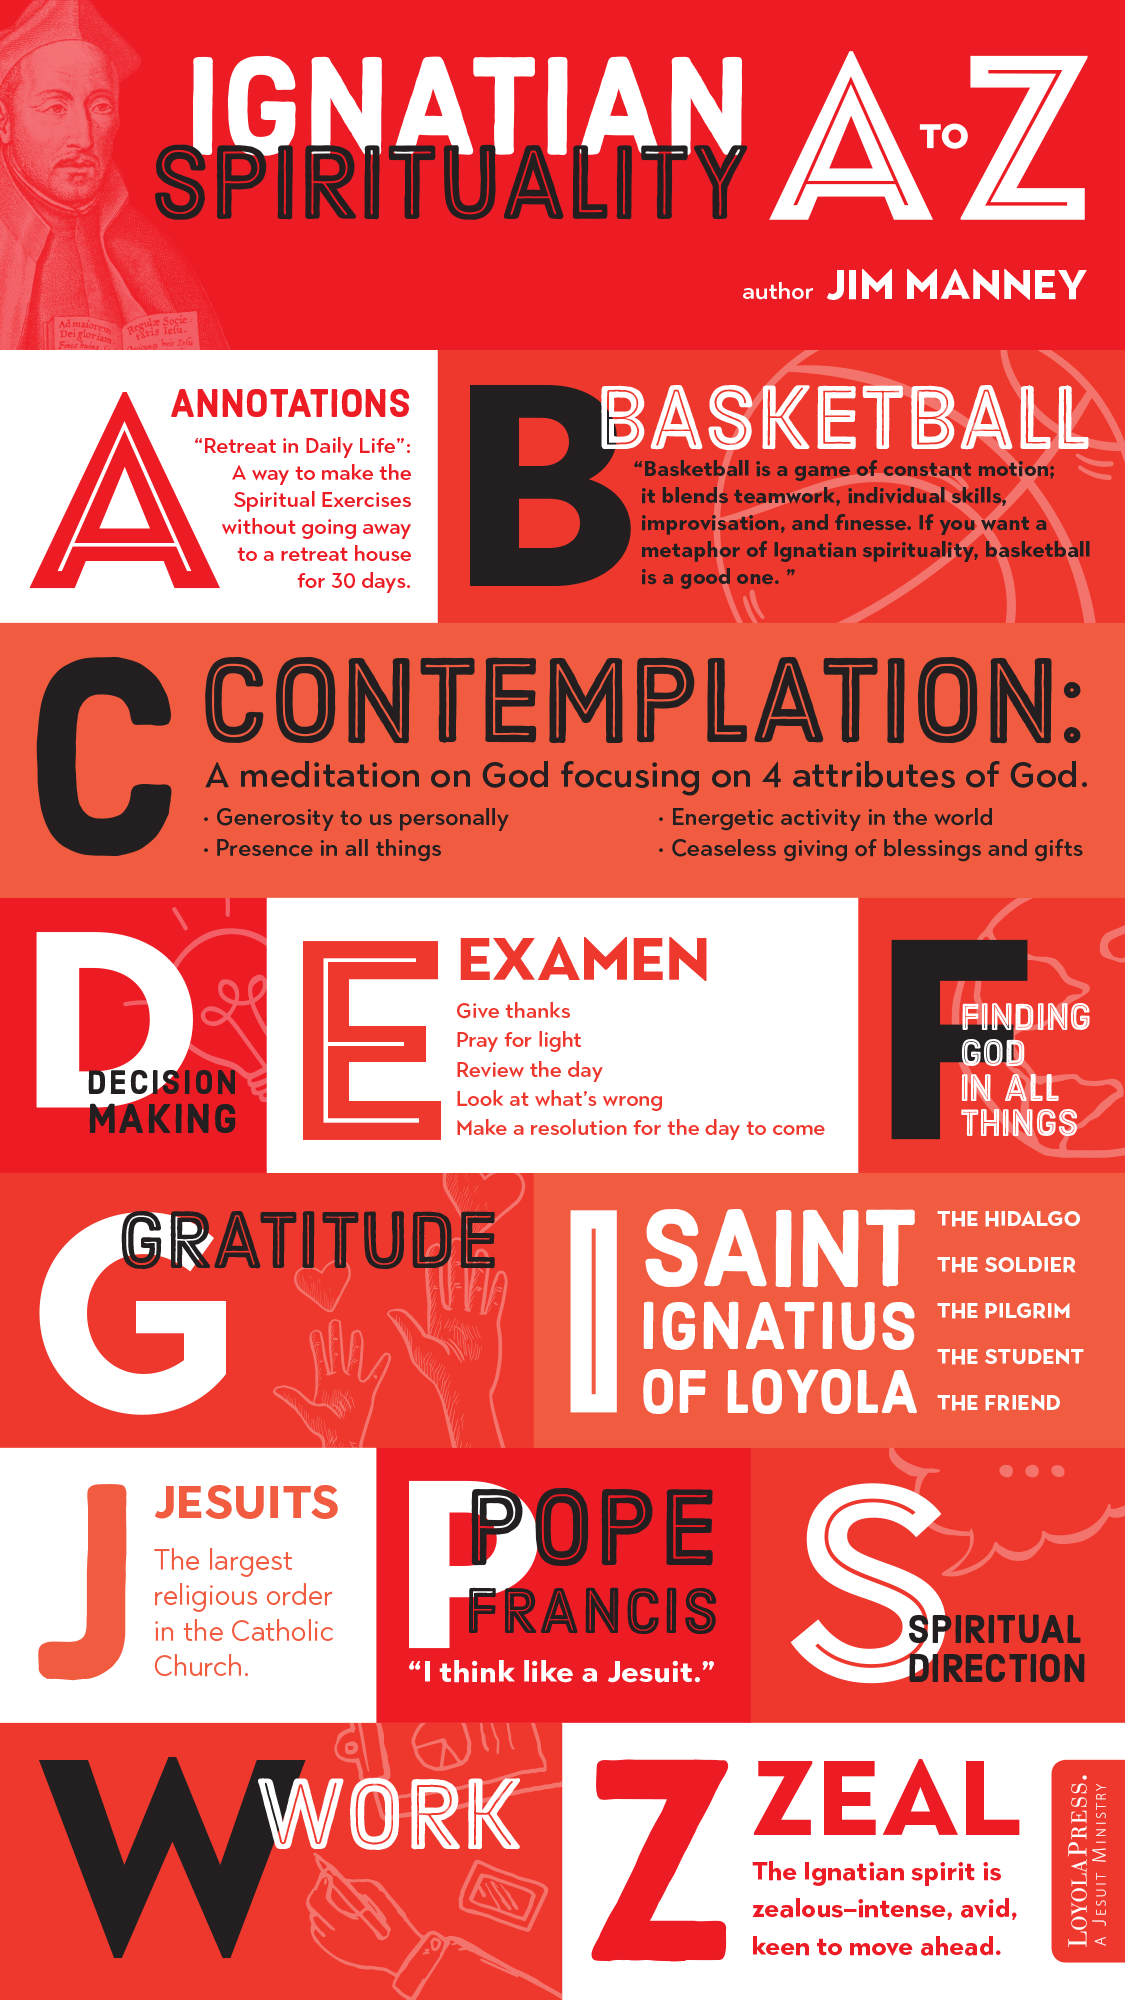 Ignatian Spirituality A to Z infographic